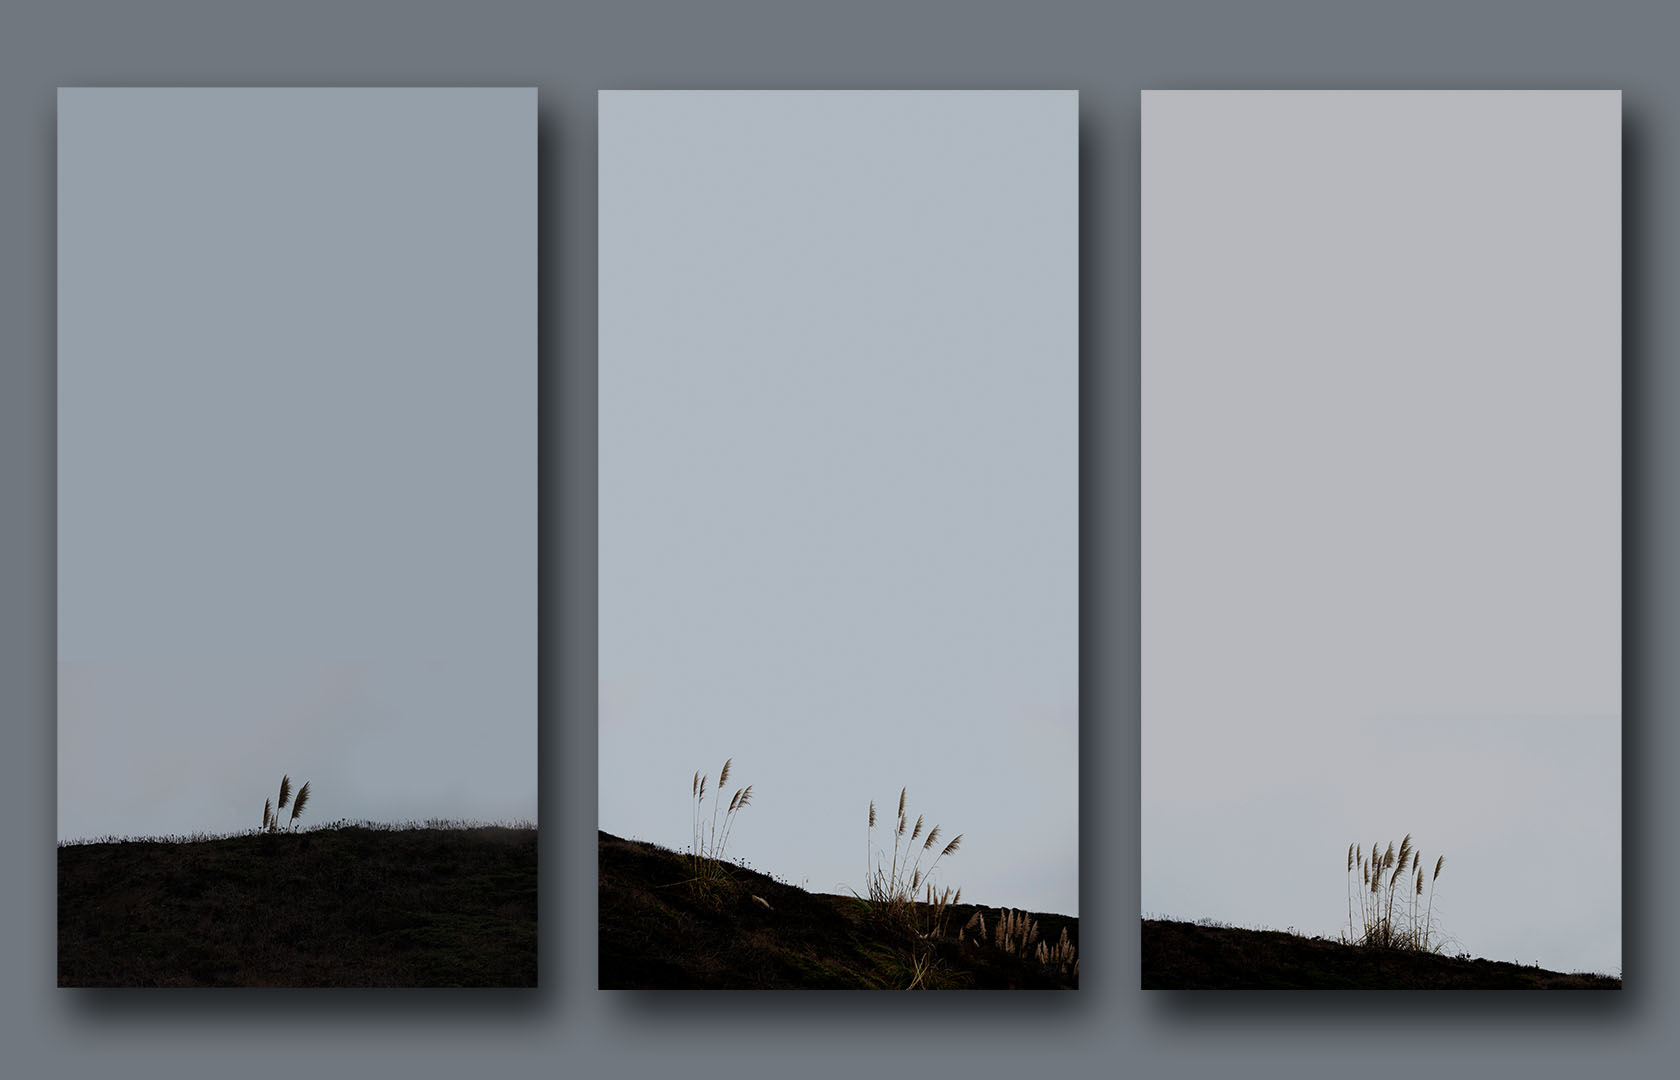 Western Edge Triptych—is a result of my frequent travels down the Great Highway in San Francisco,  along the Pacific coast. The triptych has been constructed based on my own memory and emotional response to an exquisite scenery I frequently admire  in the early morning or late afternoon hours.